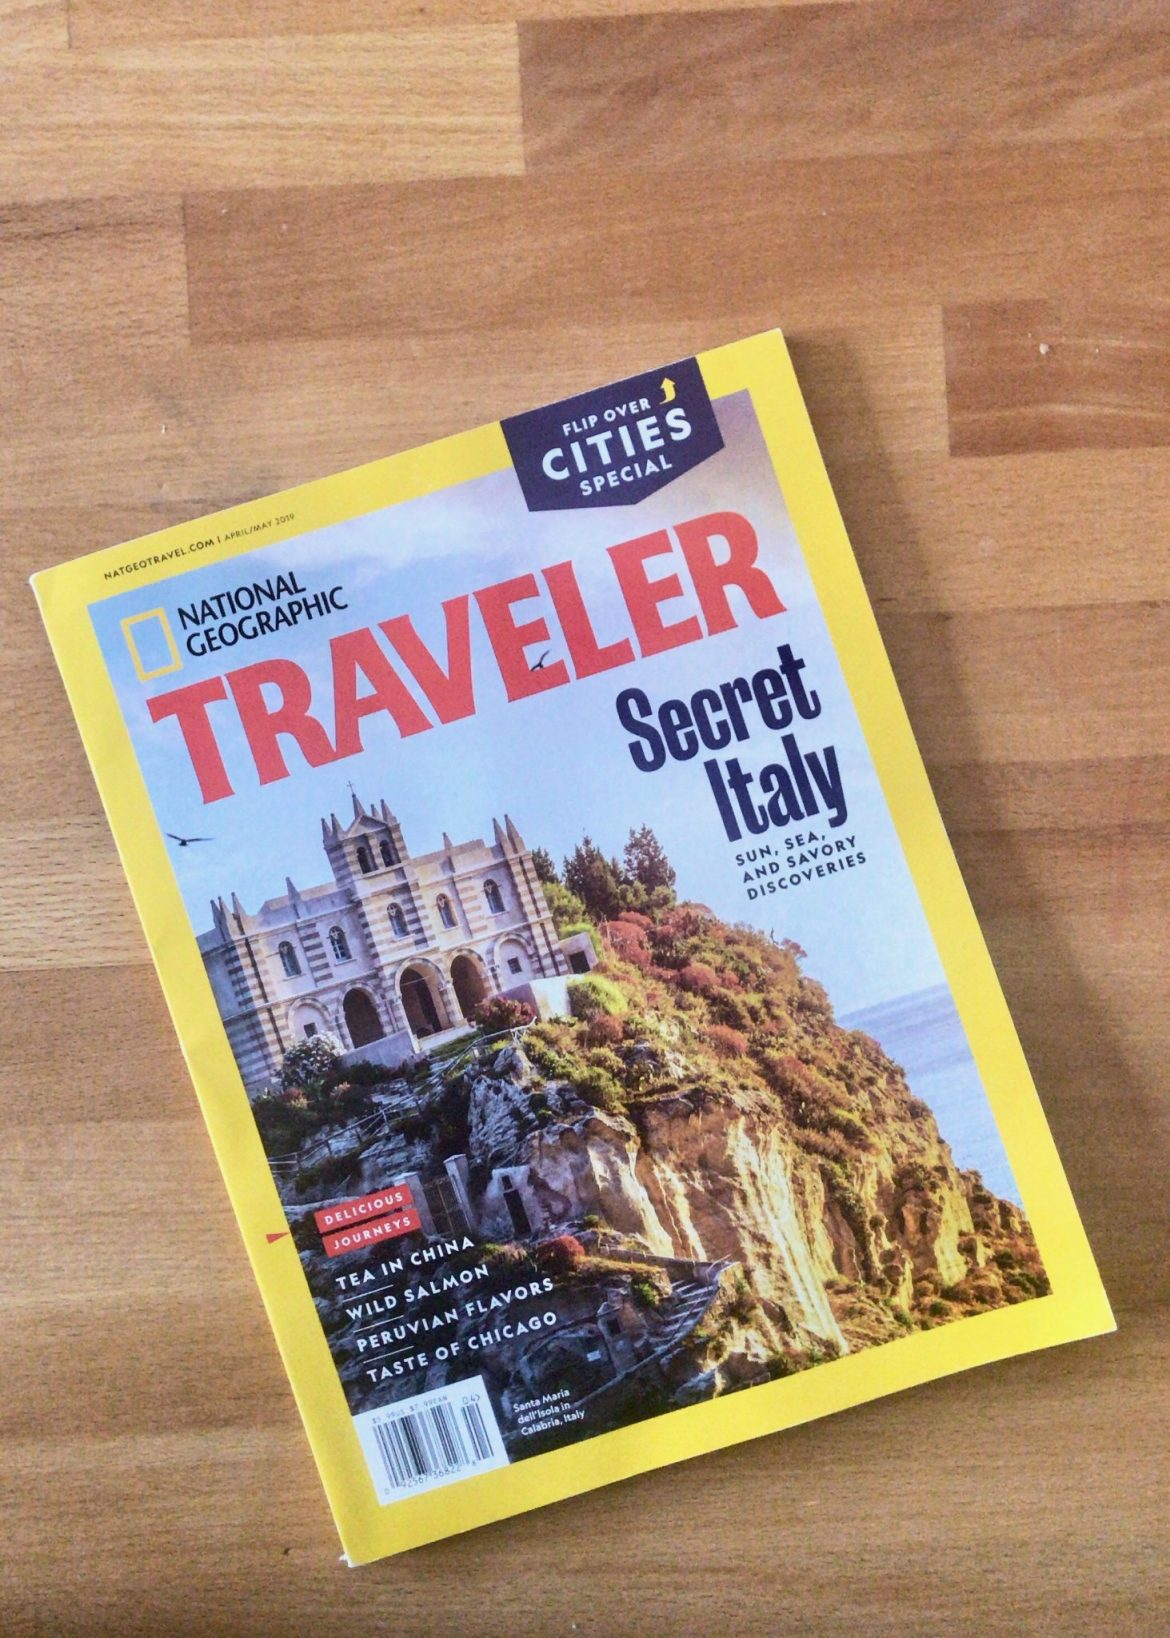 The April/May issue of National Geographic Traveler US